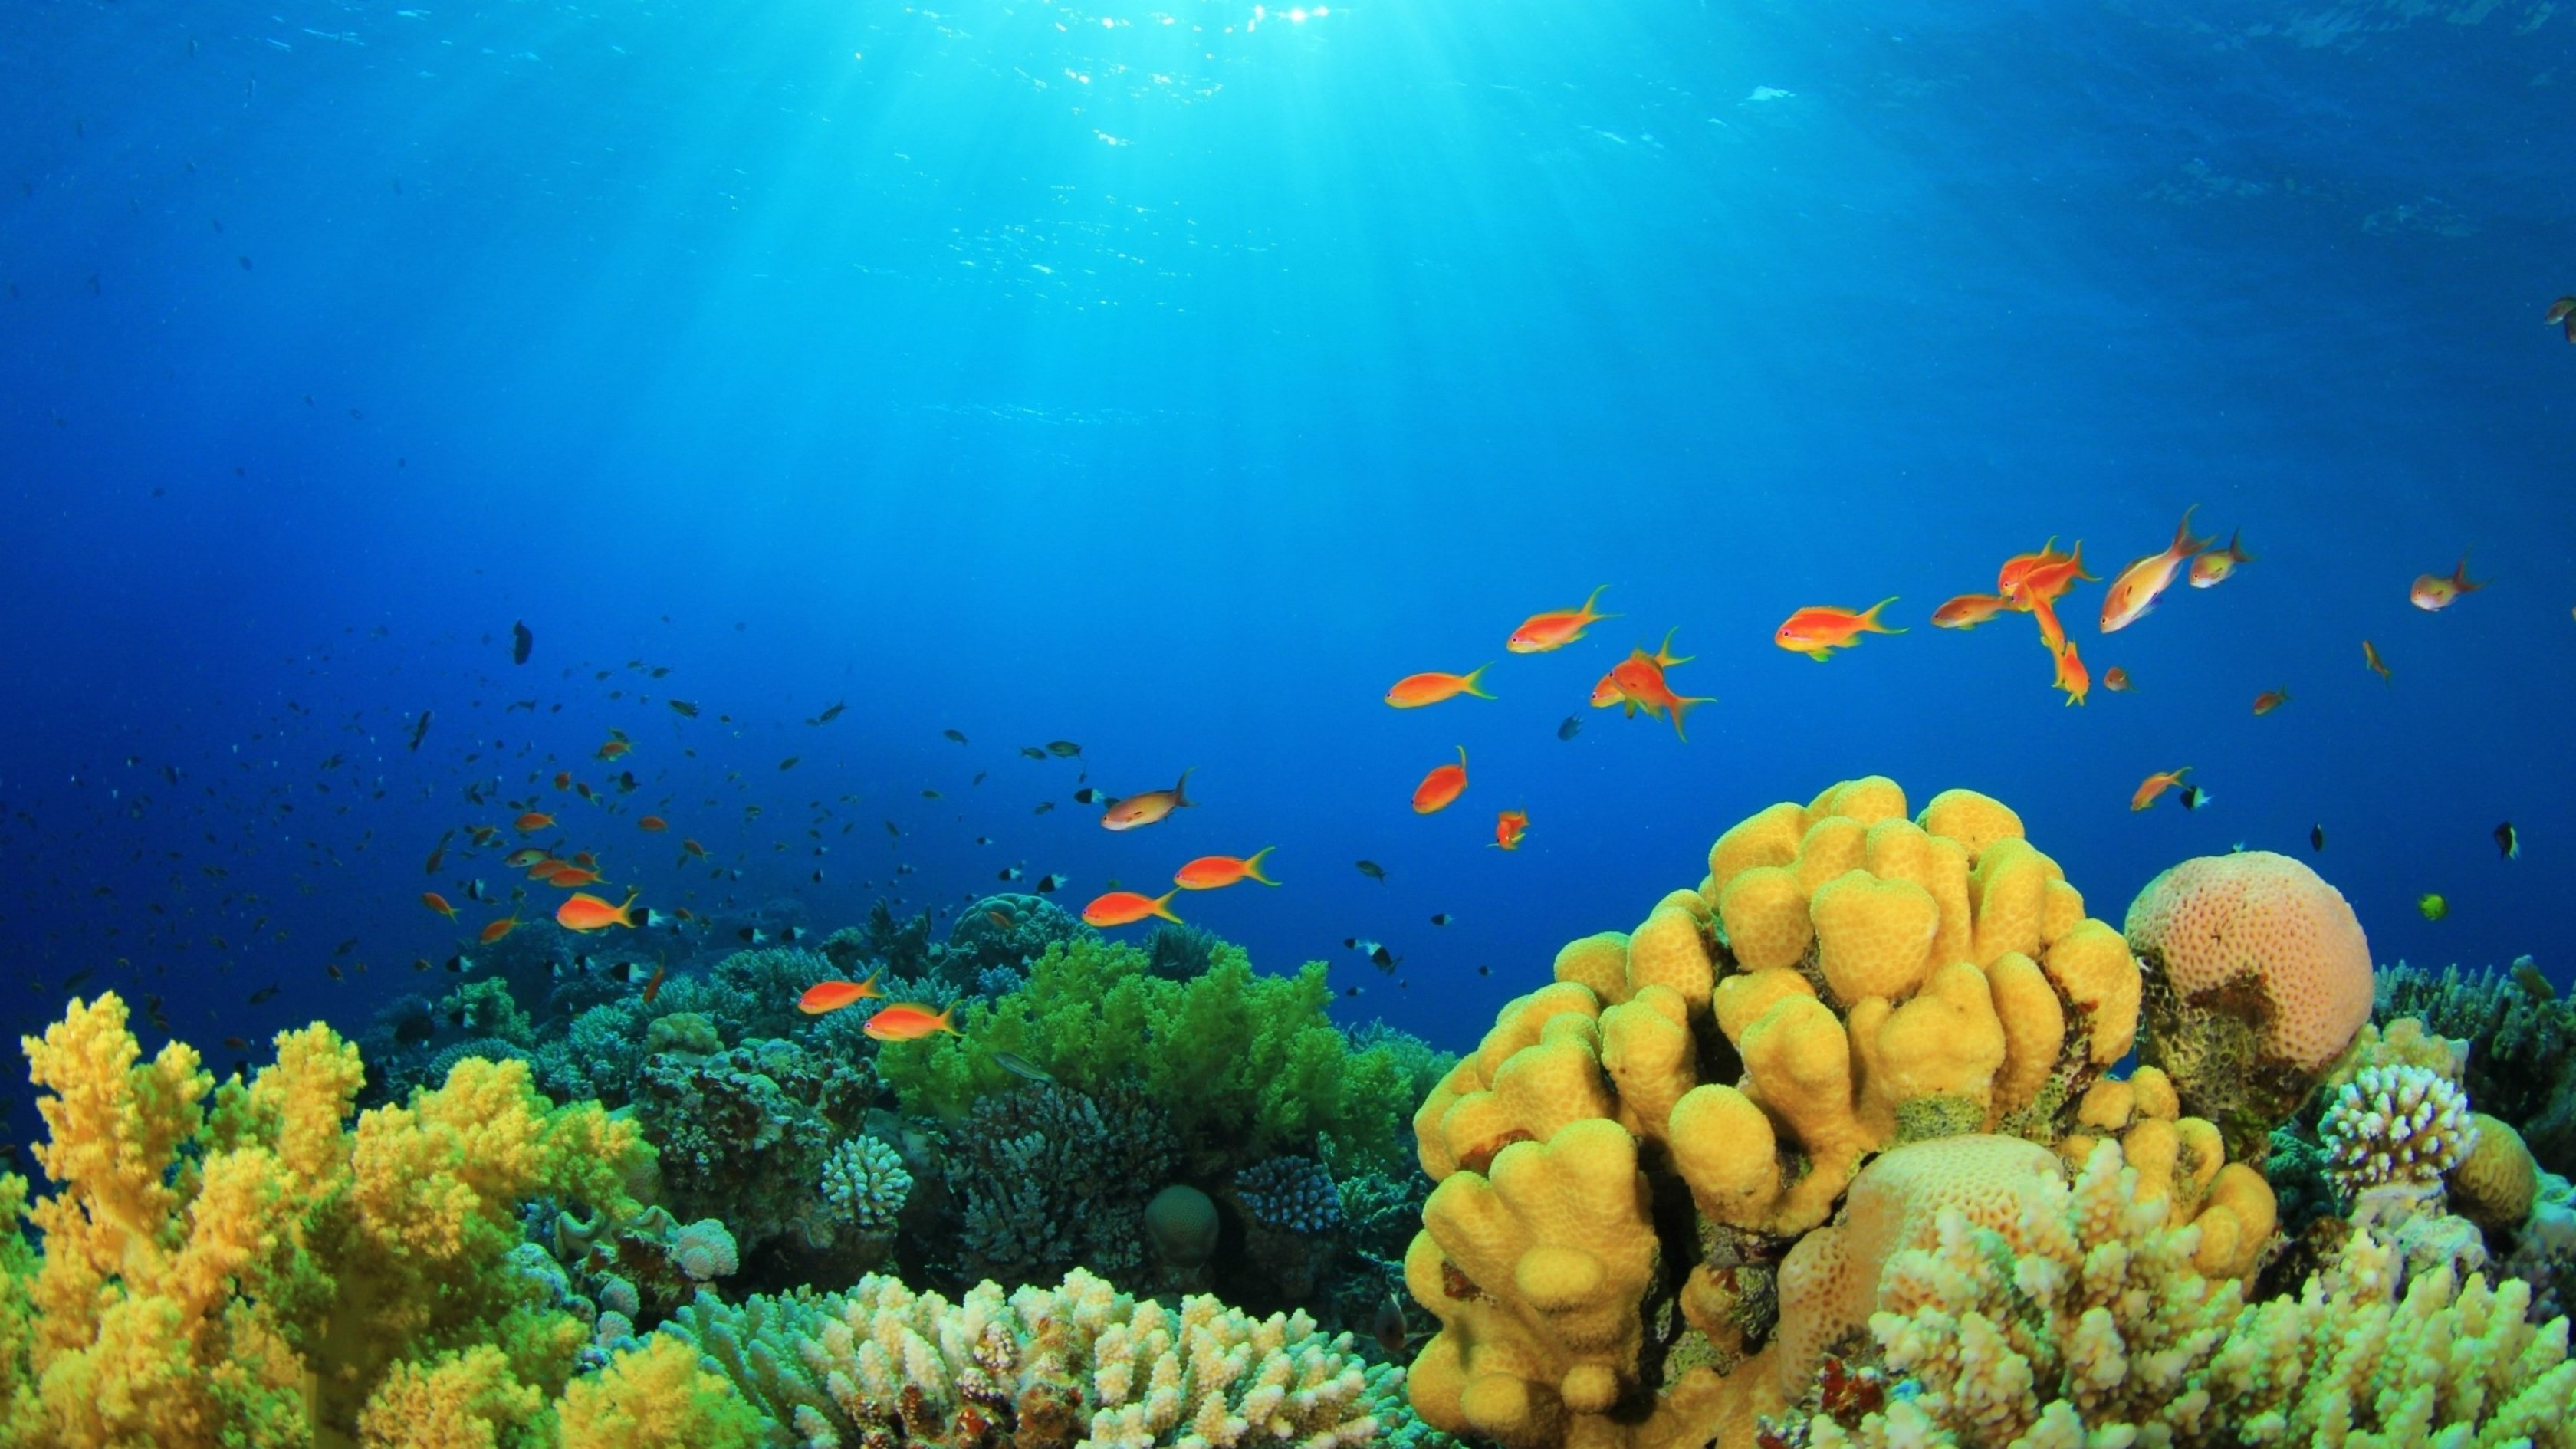 Hd Tropical Island Beach Paradise Wallpapers And Backgrounds: Underwater Fish Fishes Ocean Sea Tropical Reef Wallpaper